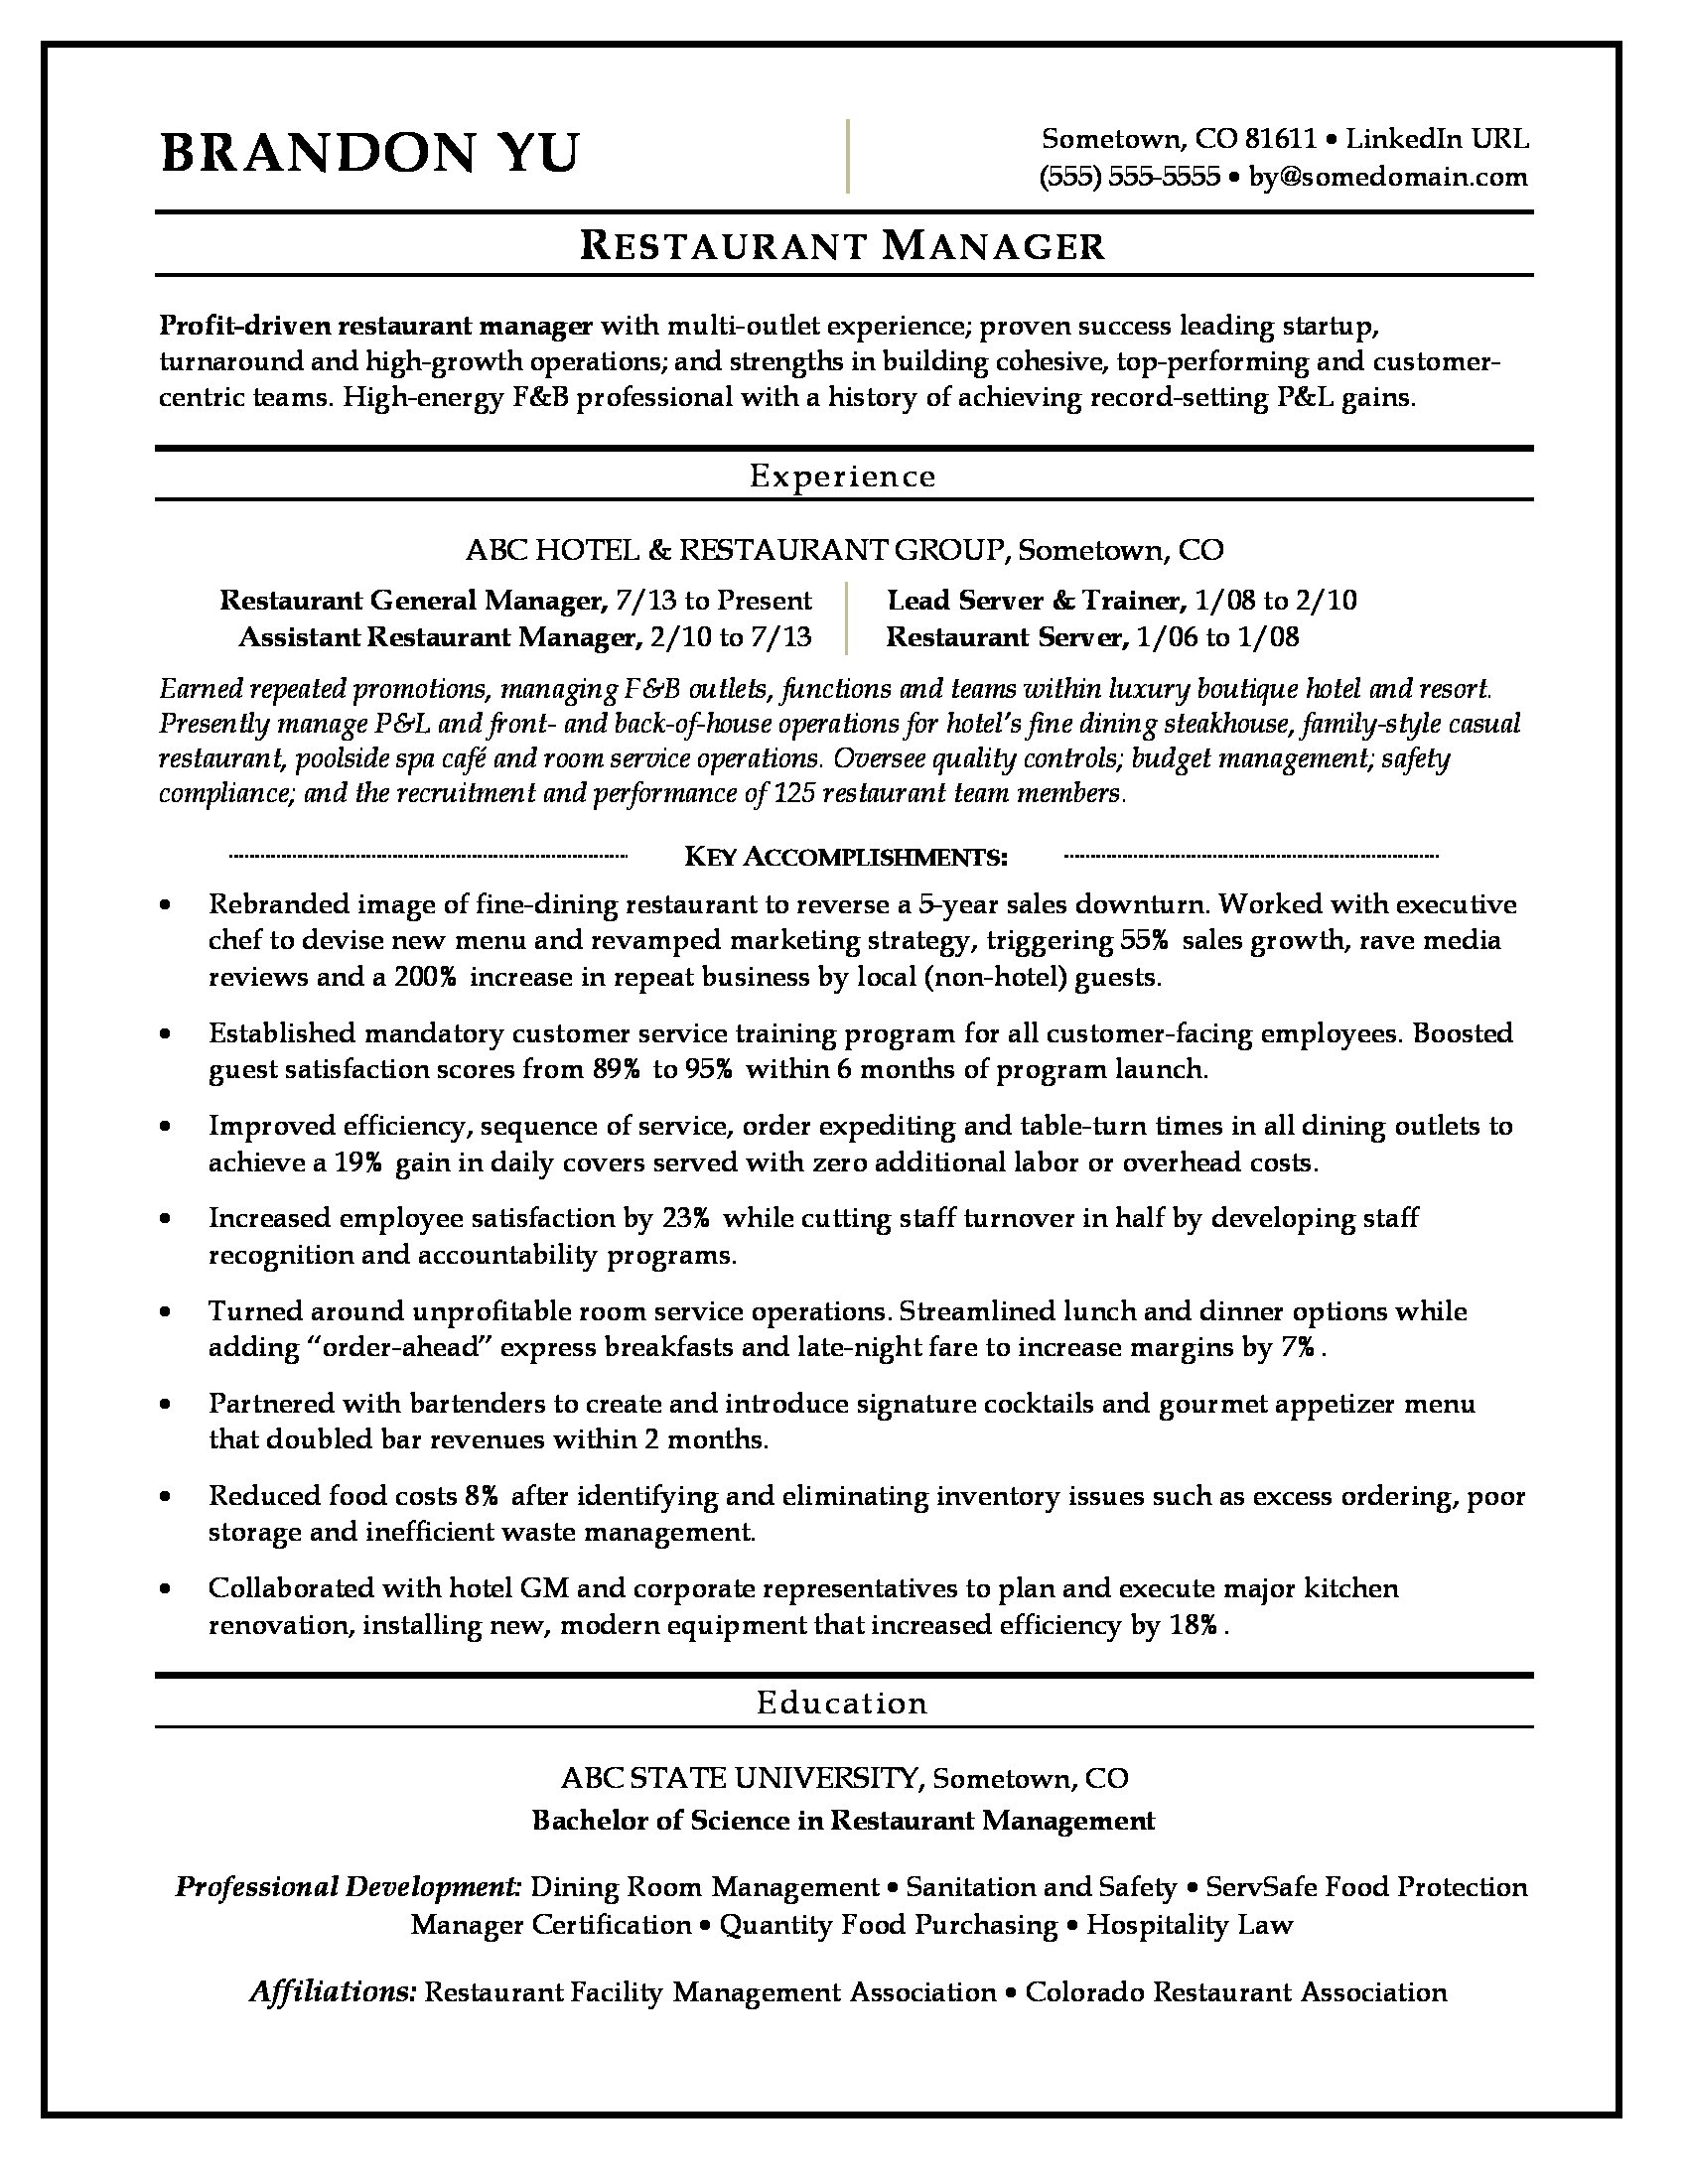 Sample Resume For A Restaurant Manager  Manager Resume Samples